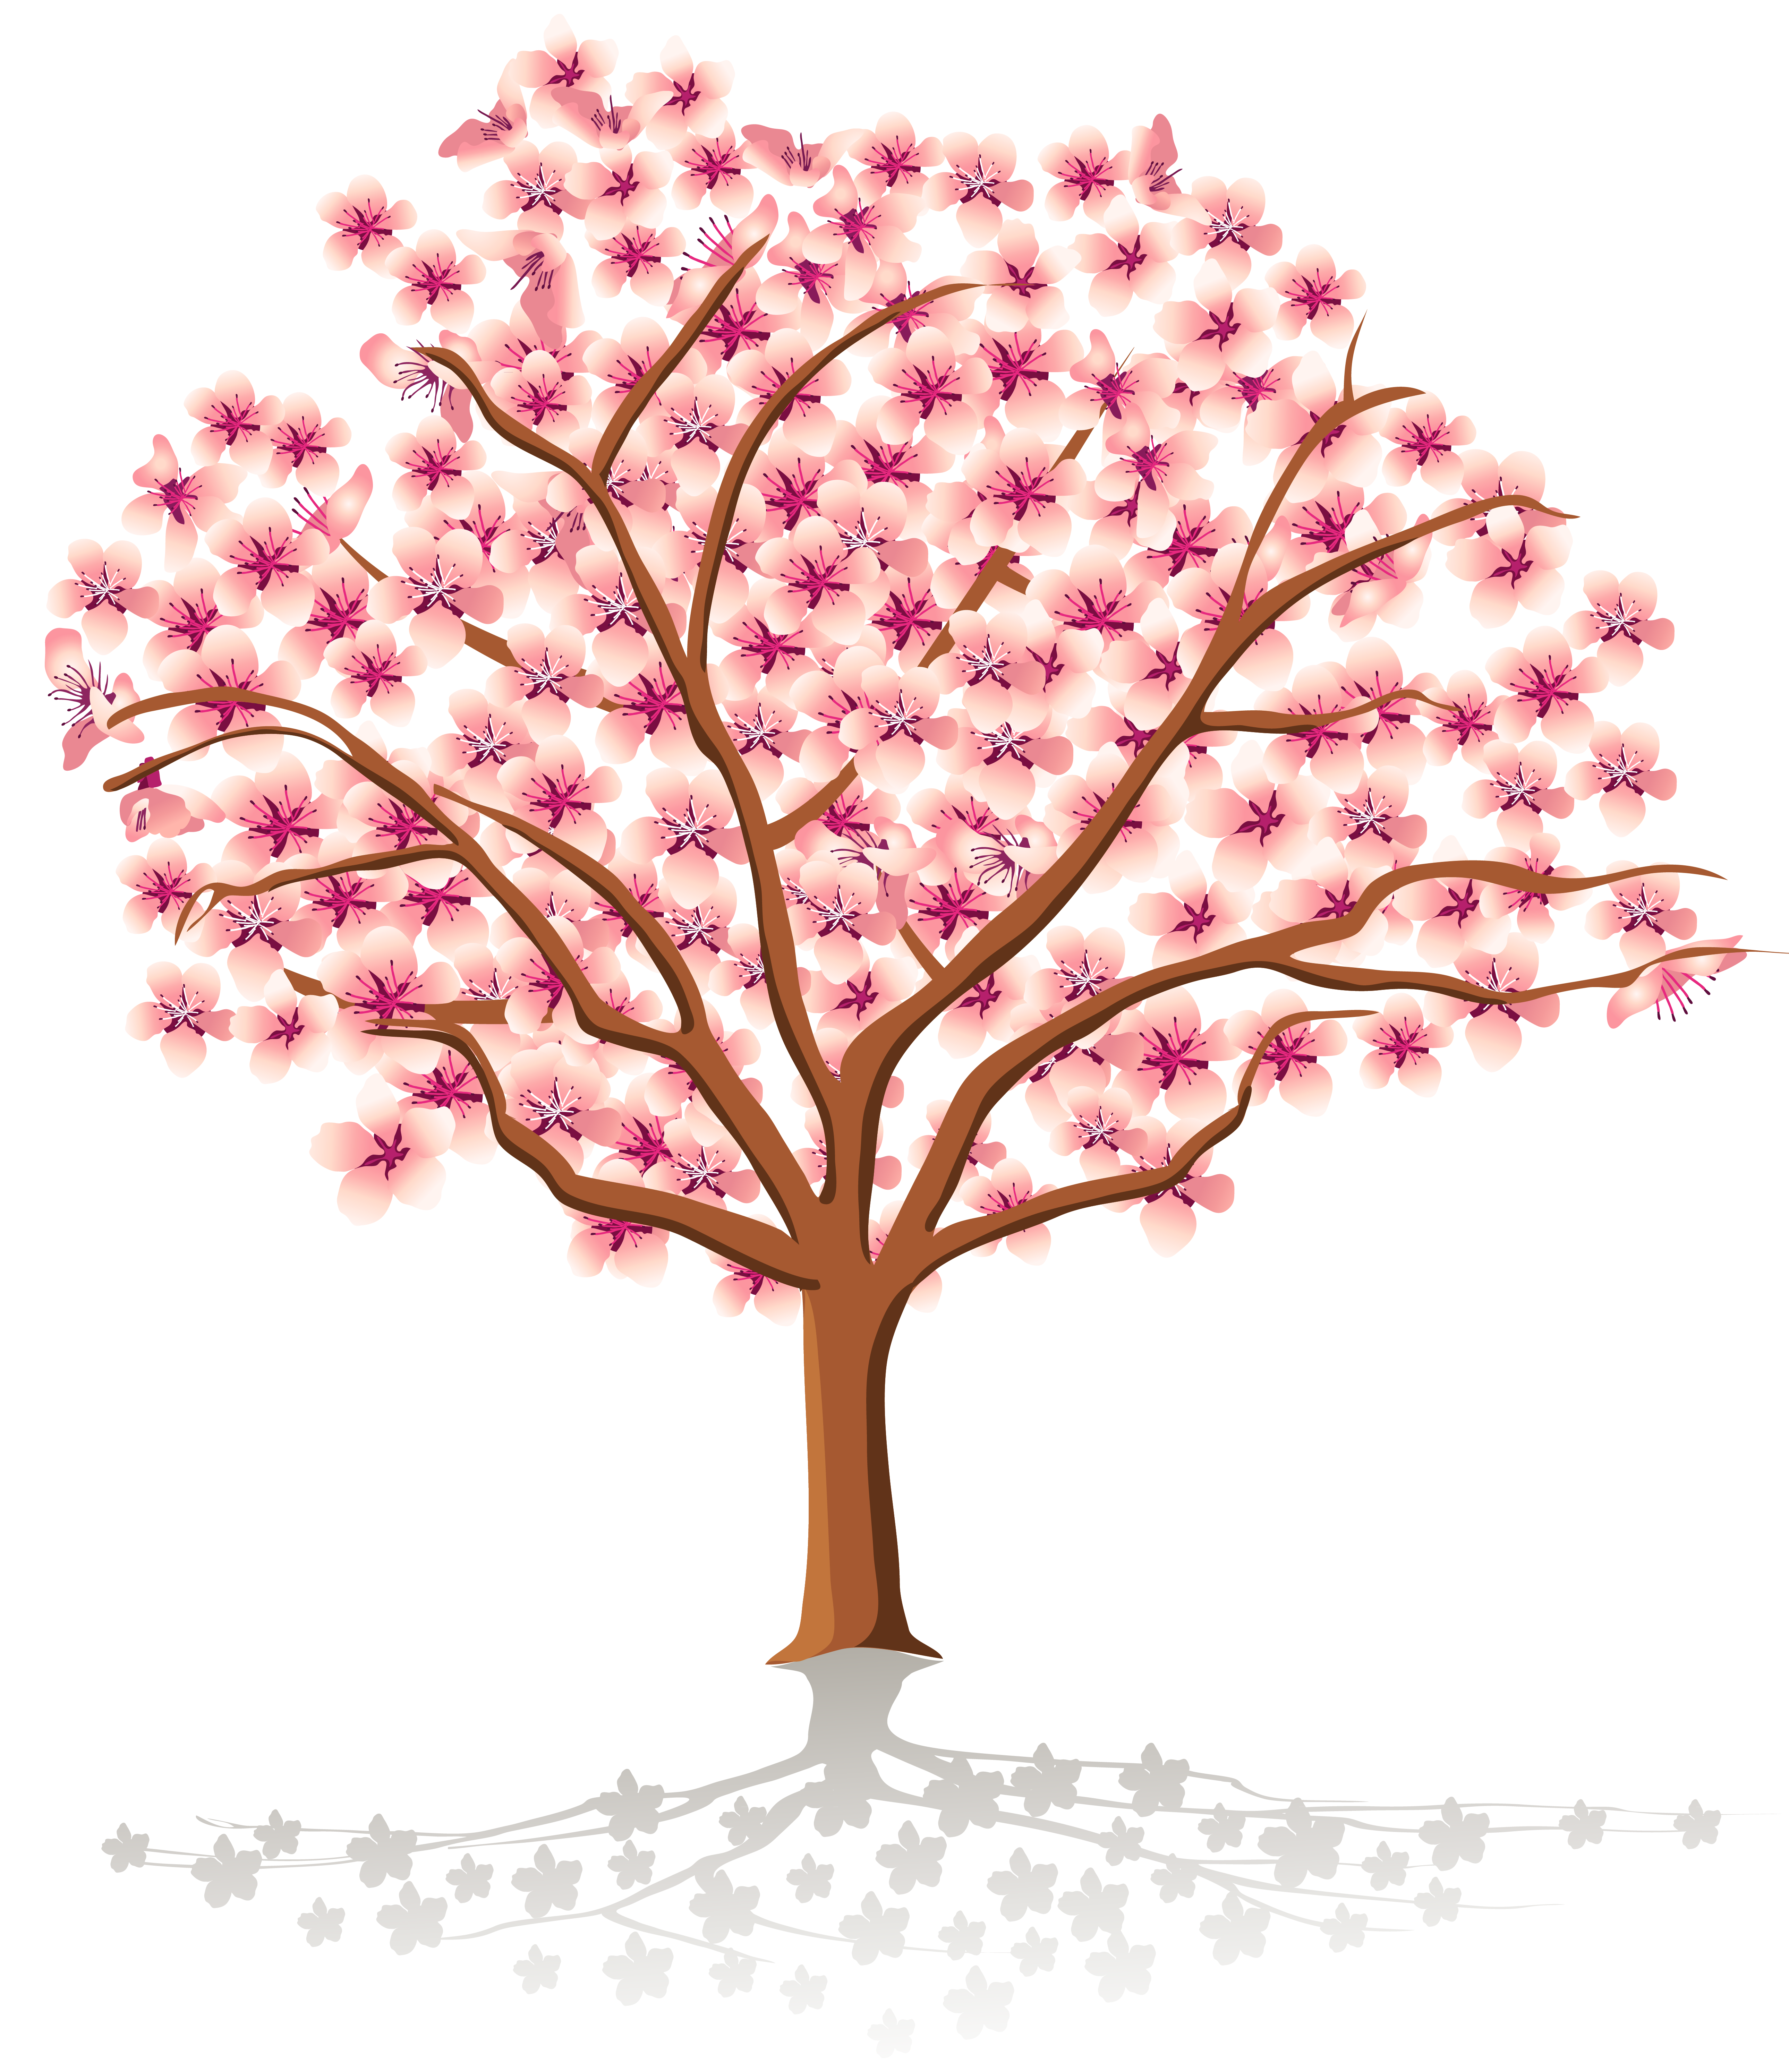 Transparent Spring Tree PNG Clipart.